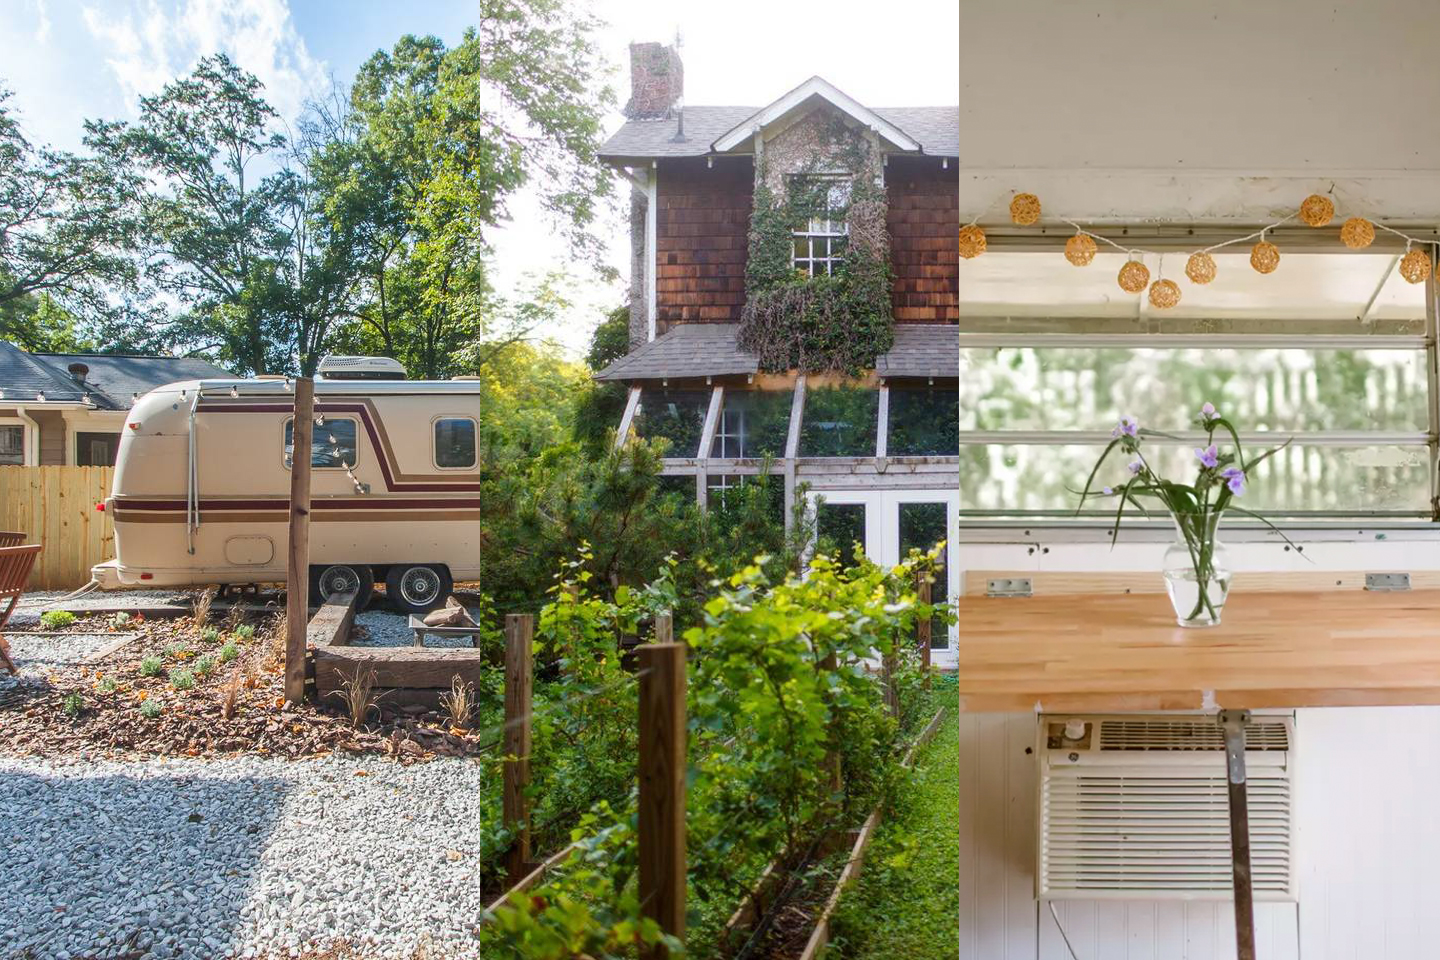 Come stay in some of the Coolest AirBNBs in Atlanta